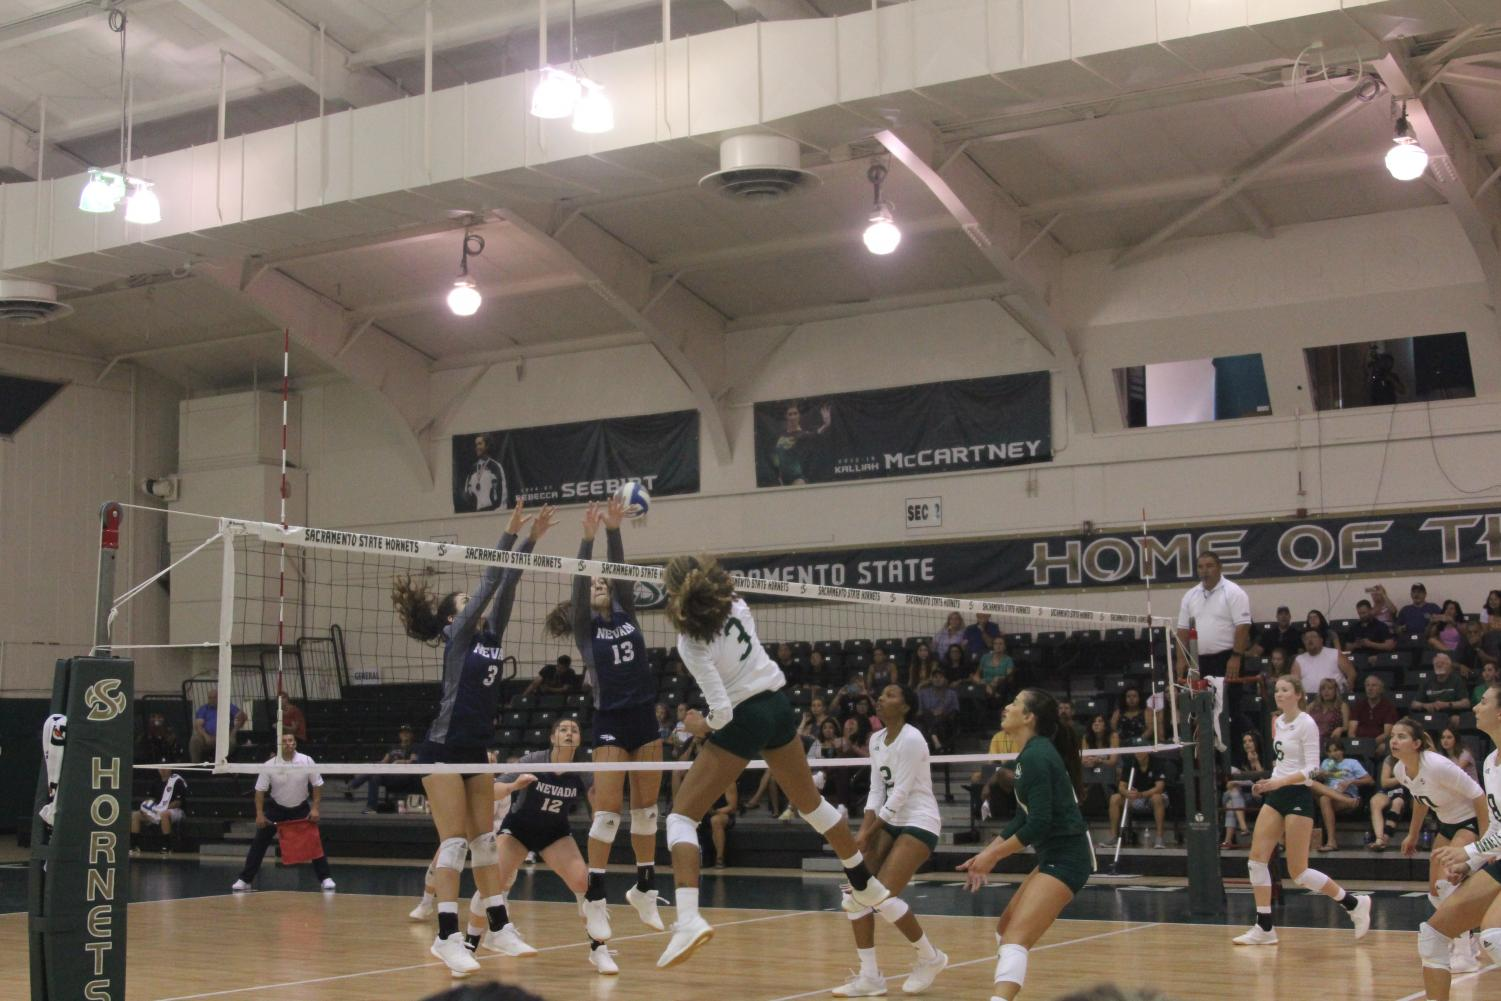 Sac+State+junior+outside+hitter+Macey+Hayden+goes+up+for+the+spike+against+Nevada+on+Saturday%2C+Aug.+3+at+the+Nest.+The+Hornets+won+the+tournament+despite+losing+to+Nevada.